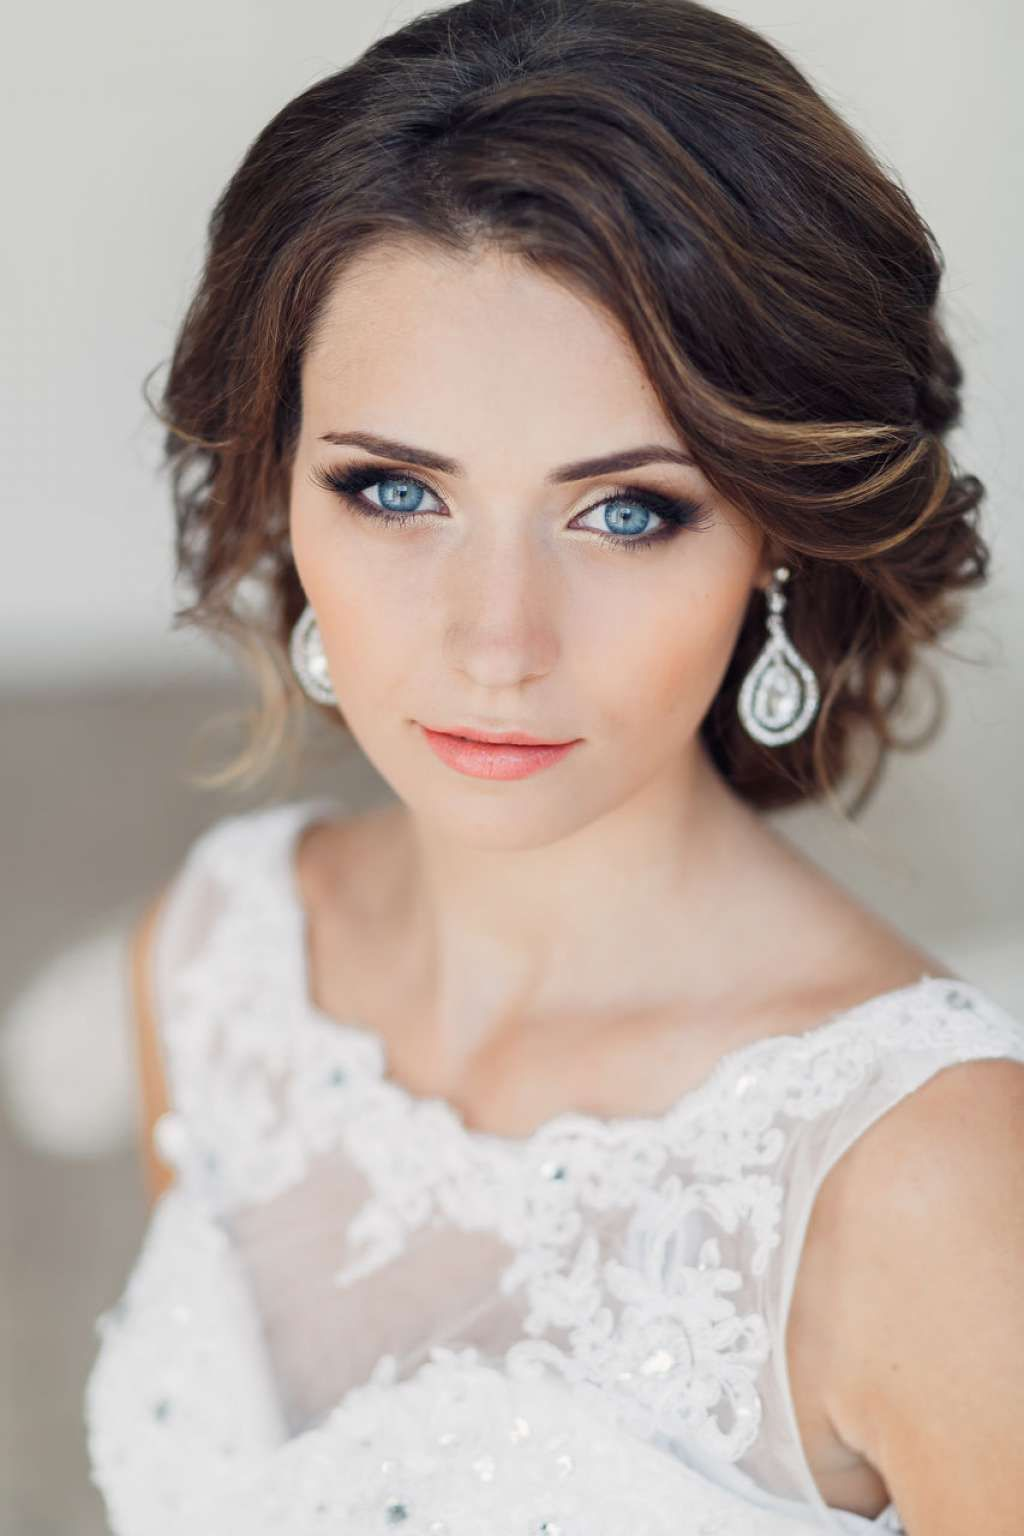 Bridal Makeup For Blue Eyes And Dark Hair One1lady Hair